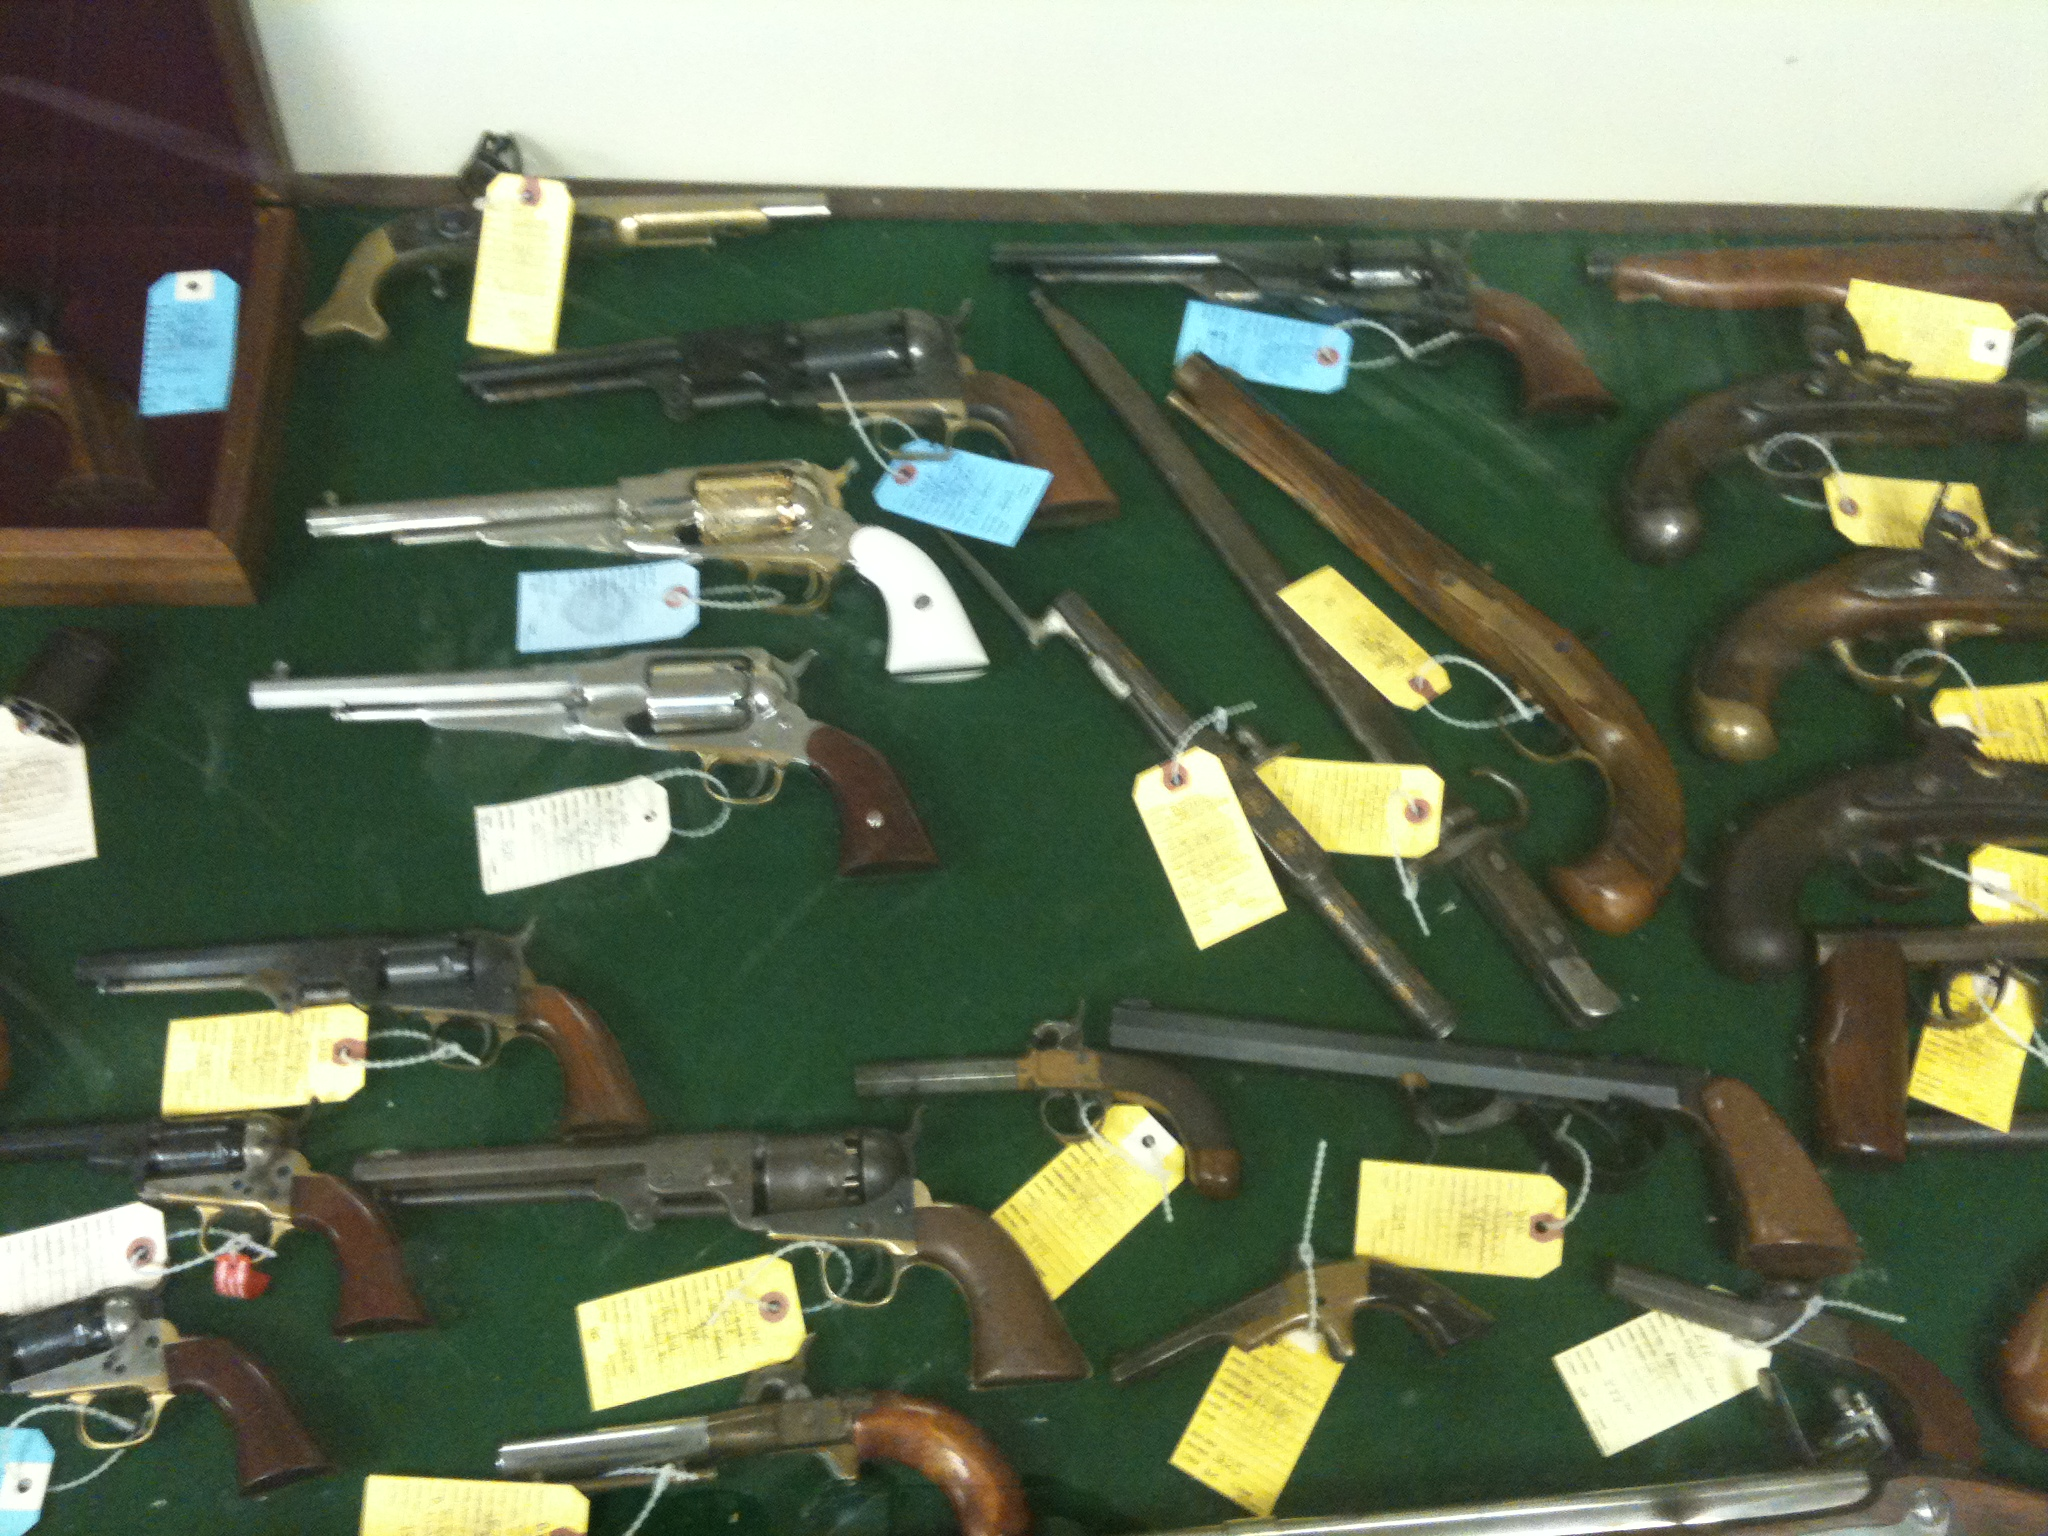 An assortment of revolvers and single shot handguns ranging from rare to reproductions. The blue tags represent NIB firearms while the yellow tags represent pre-owned.